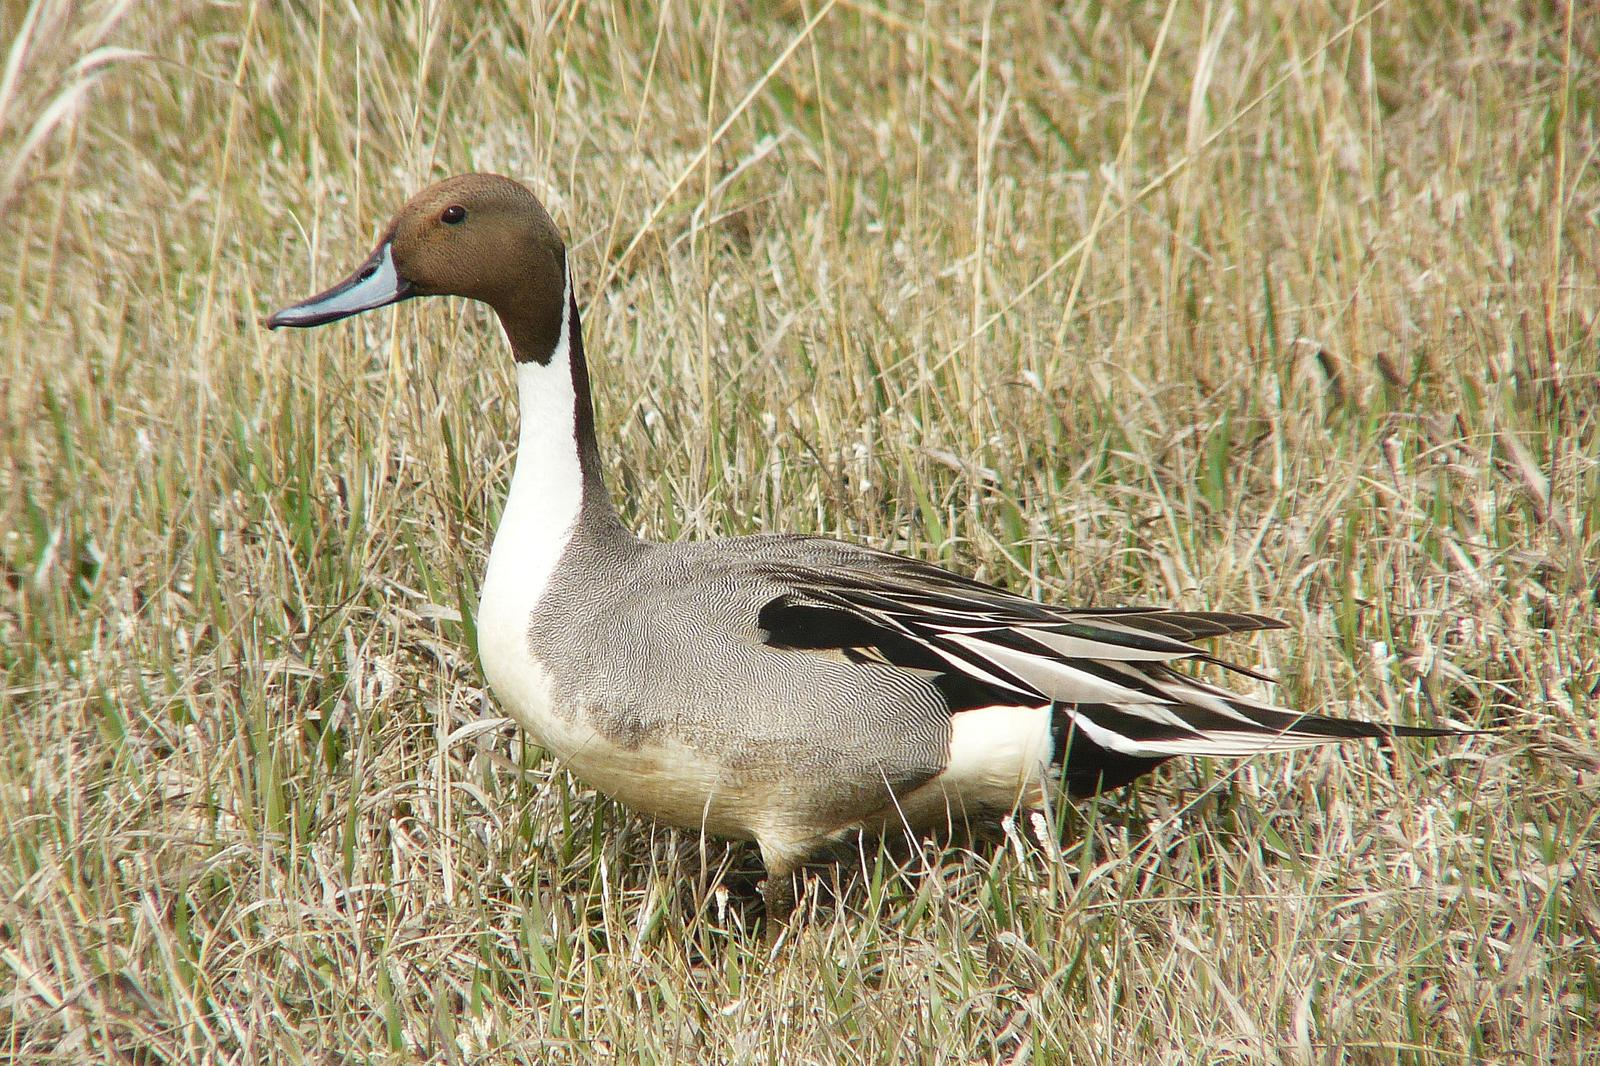 Northern Pintail Photo by Bob Neugebauer